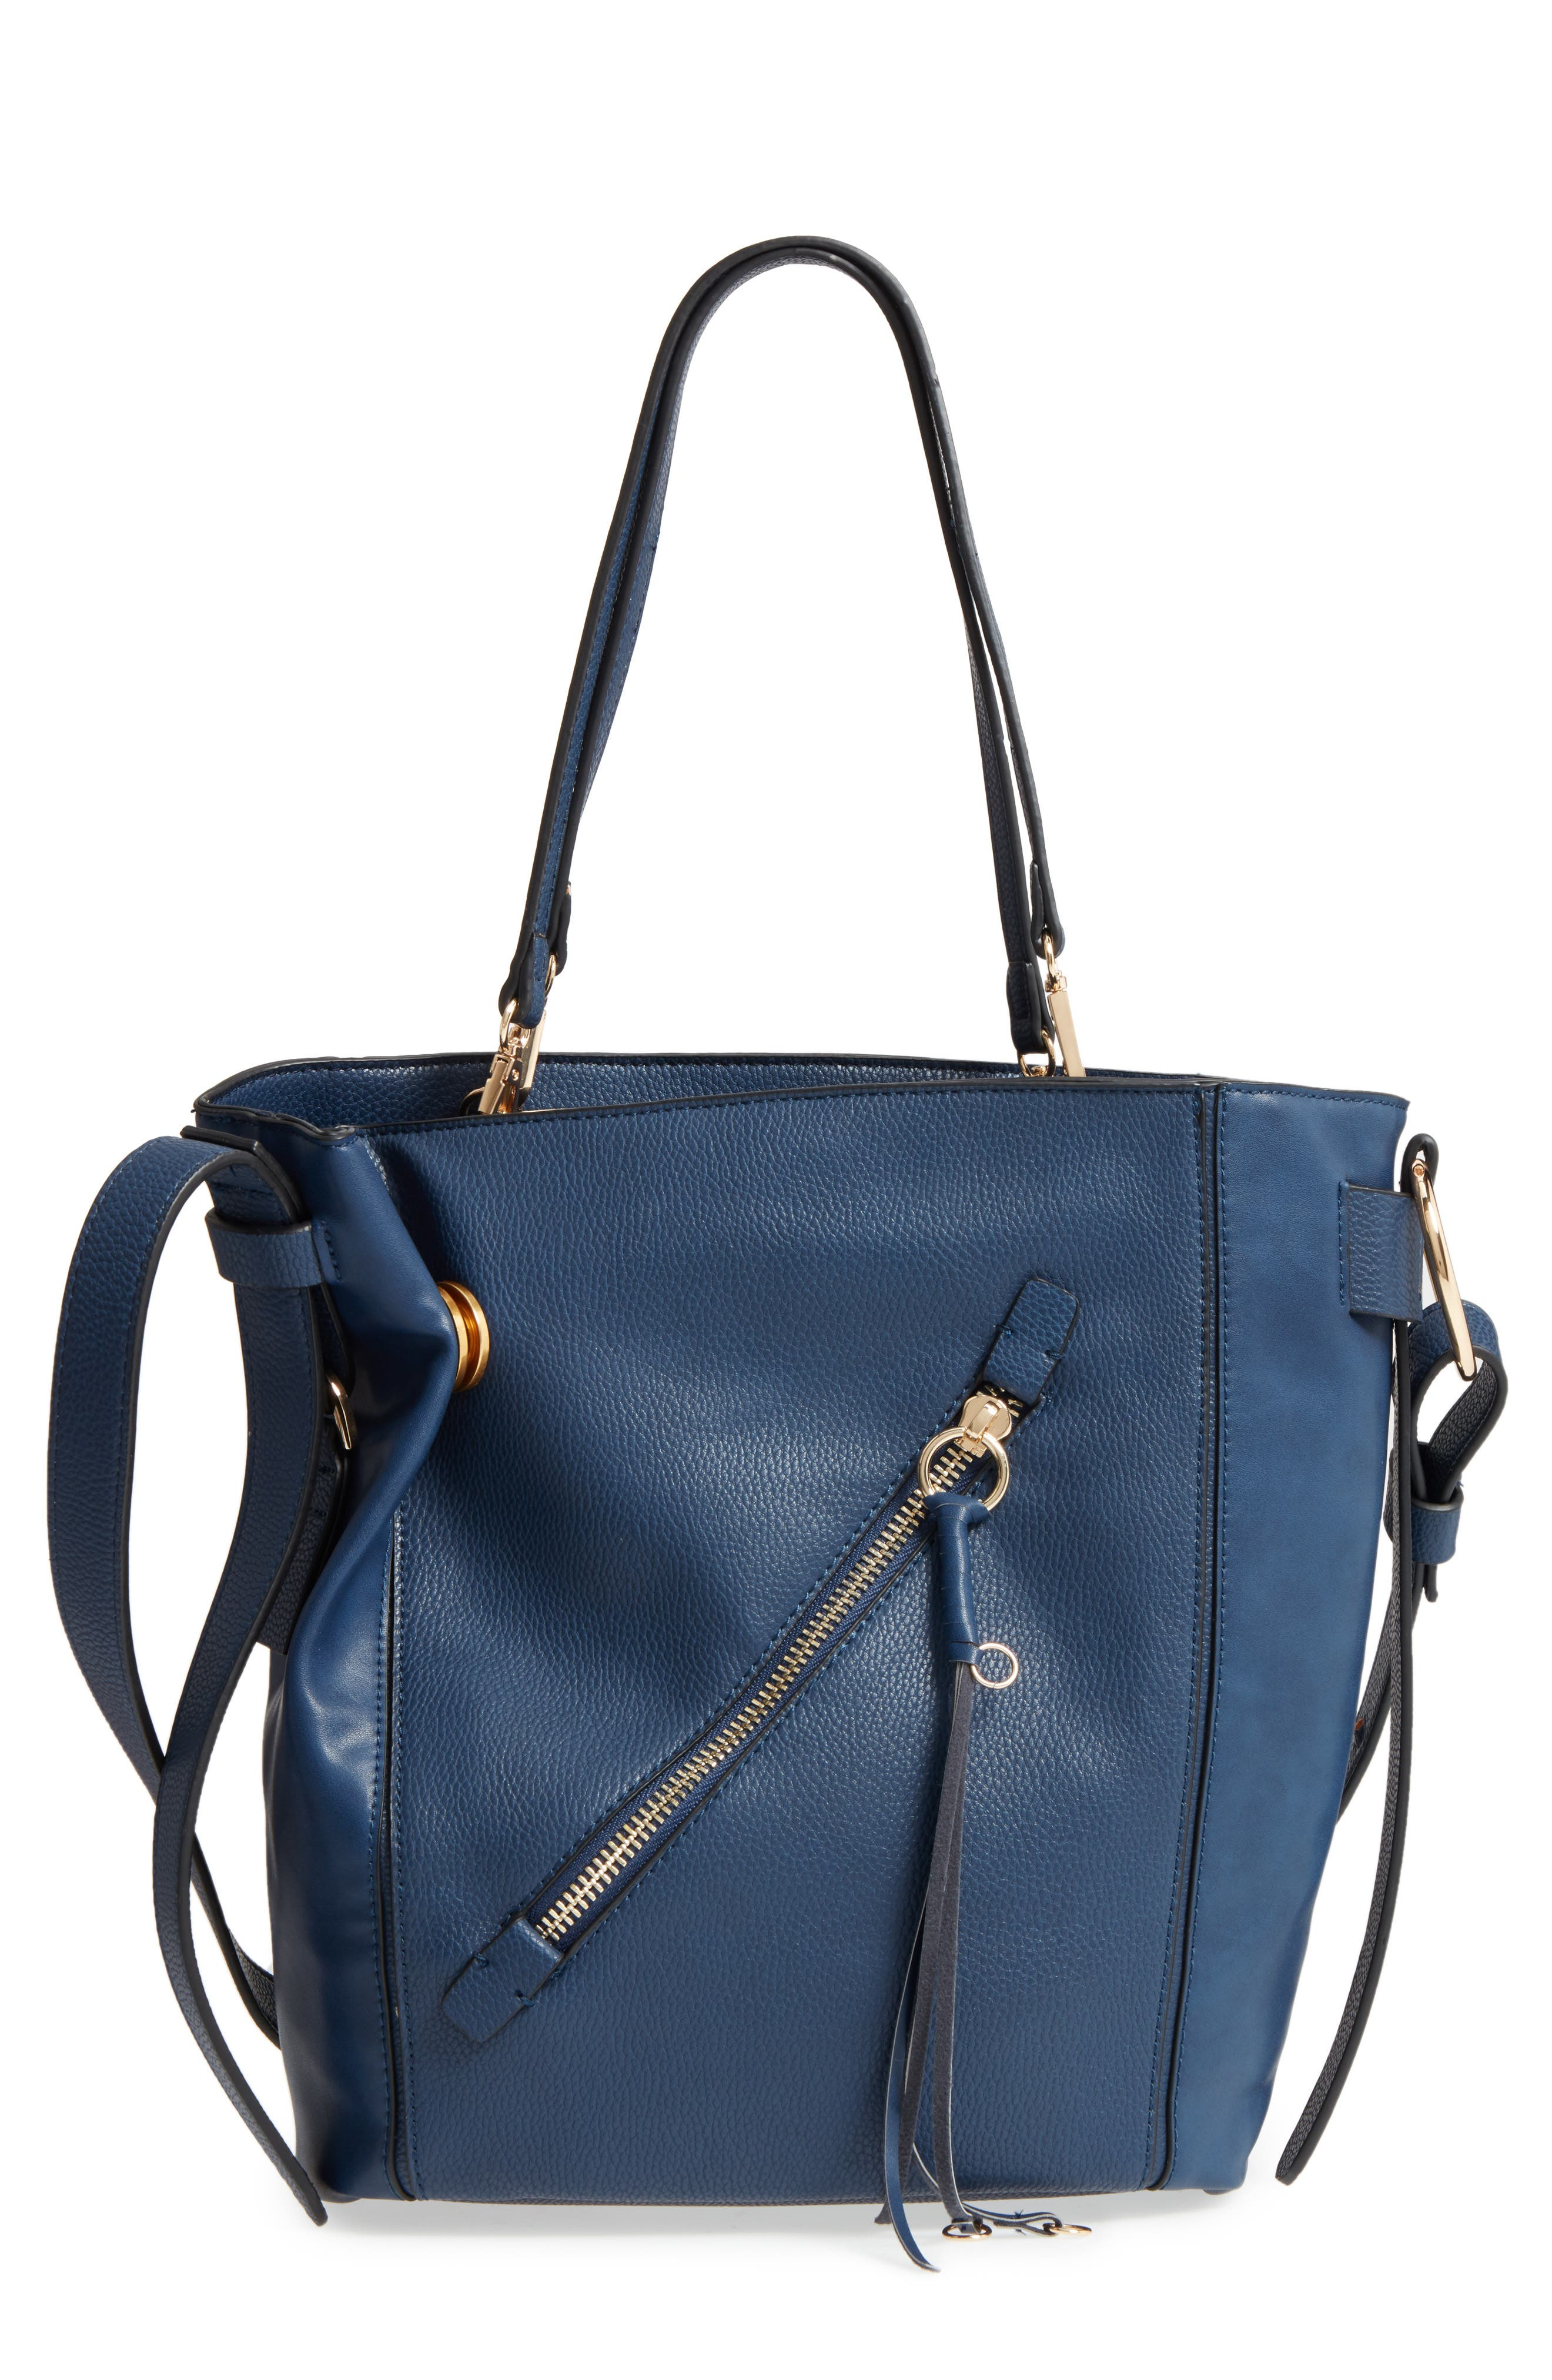 SR Squared by Sondra Roberts Faux Leather Tote